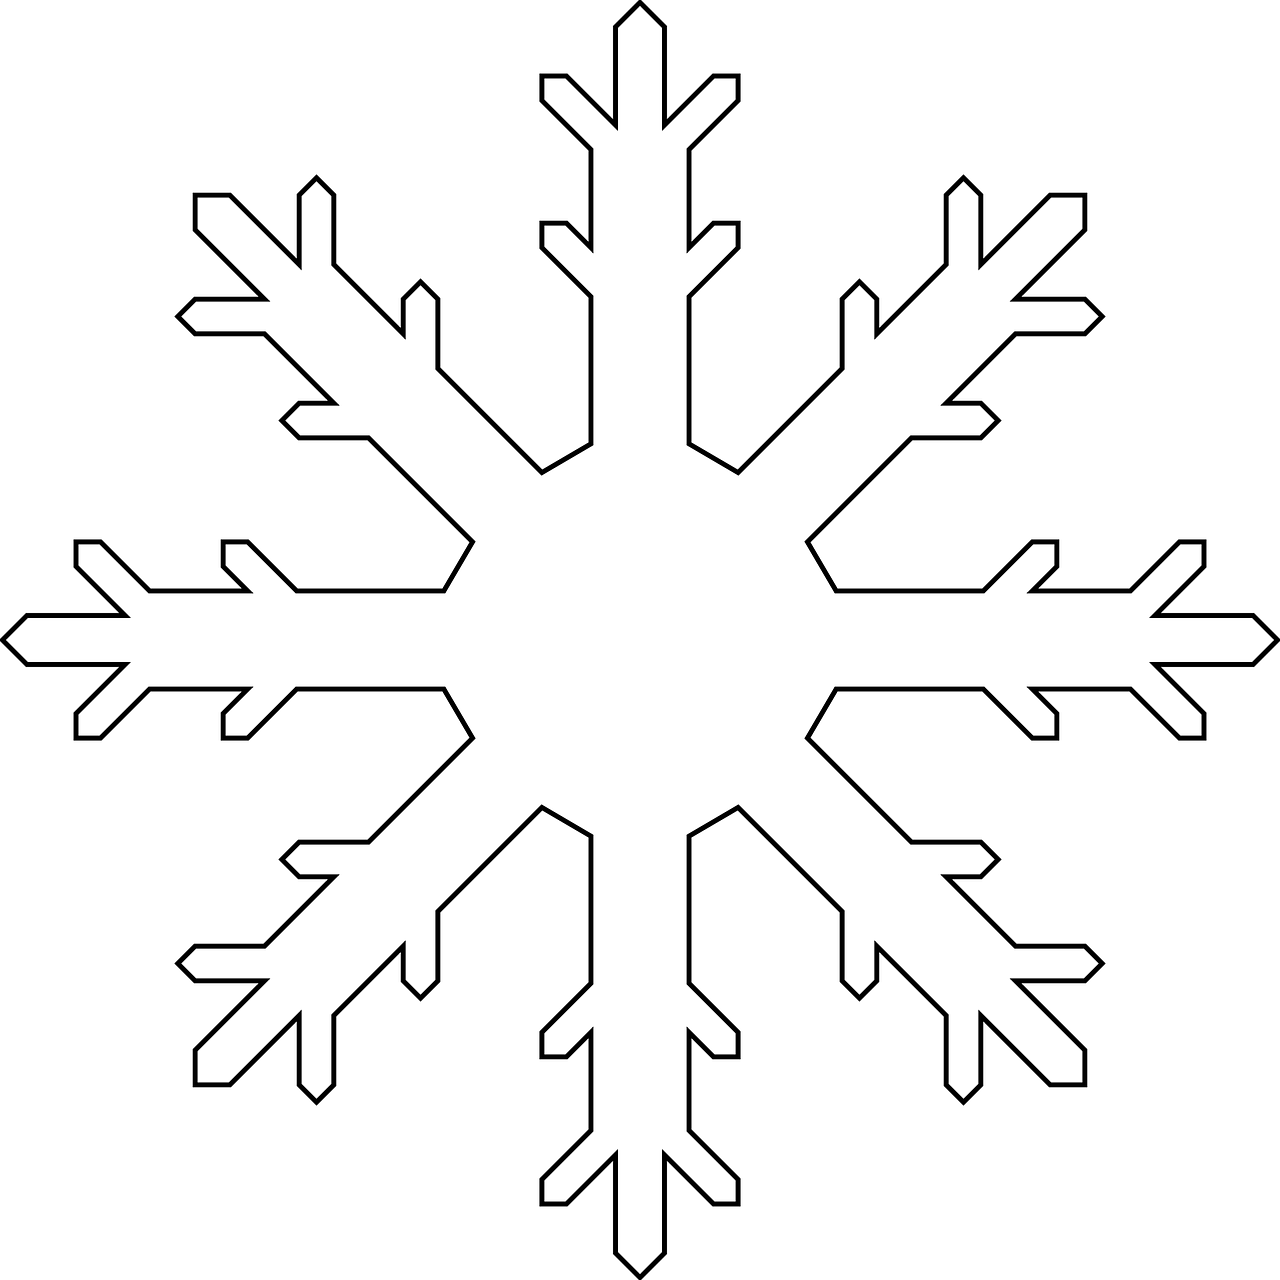 snowflake colouring pages pinterest snowflake template template